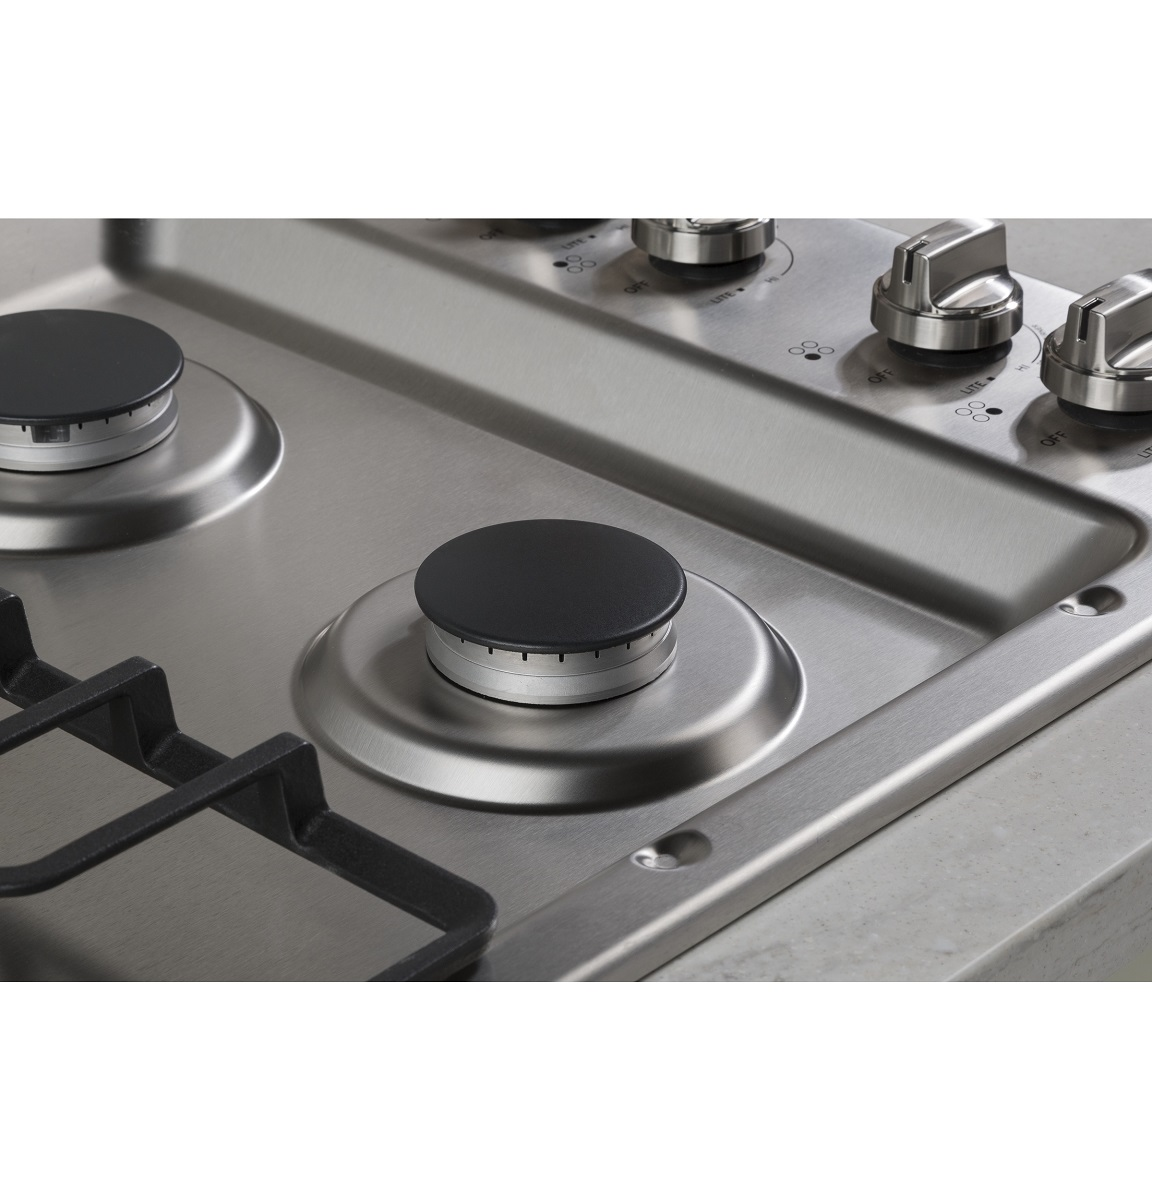 guide to pick the best 30 inch and 36 inch gas cooktop 2018. Black Bedroom Furniture Sets. Home Design Ideas